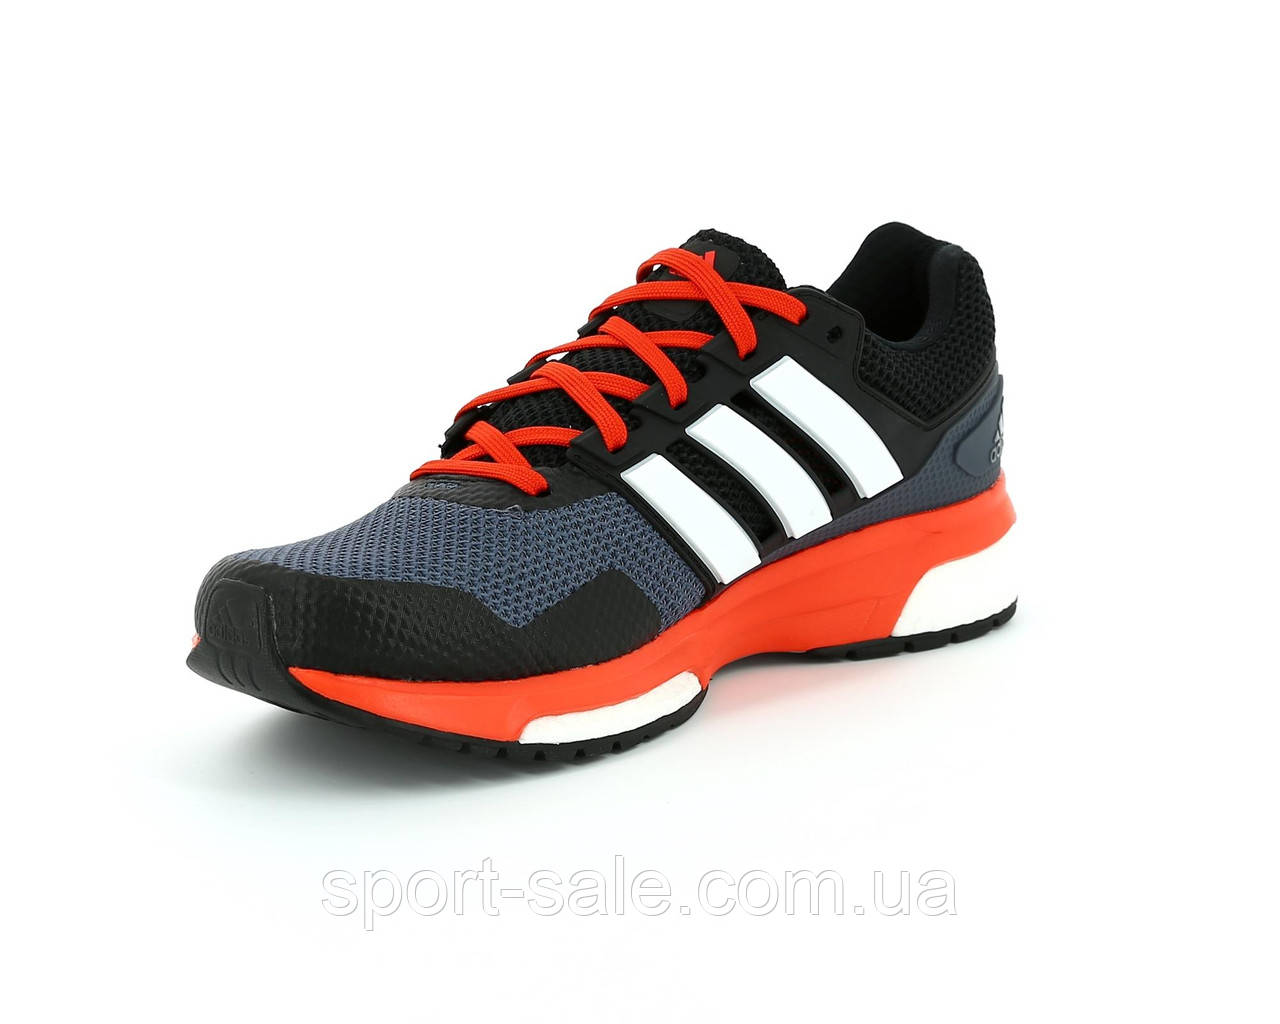 uk availability da5b0 9c43a Adidas Response Boost 2 (B33489) - SPORT-SALE.COM.UA в